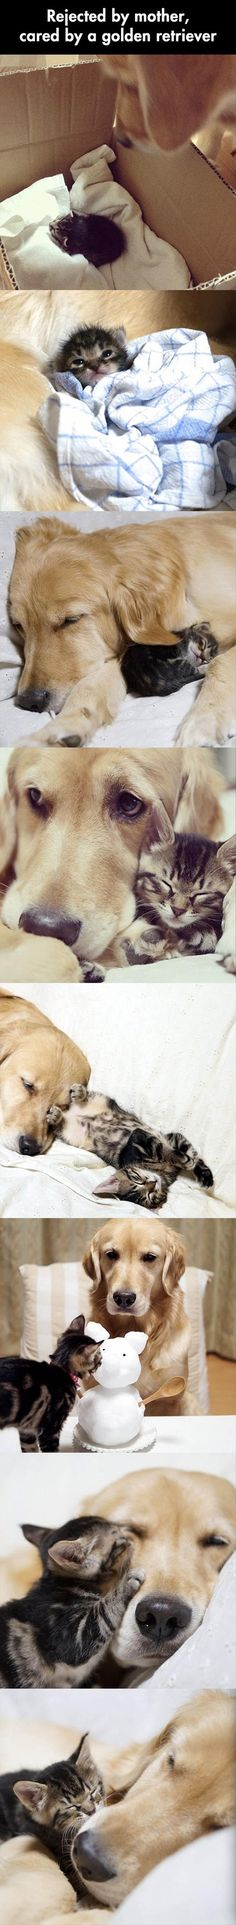 All together now: awwww